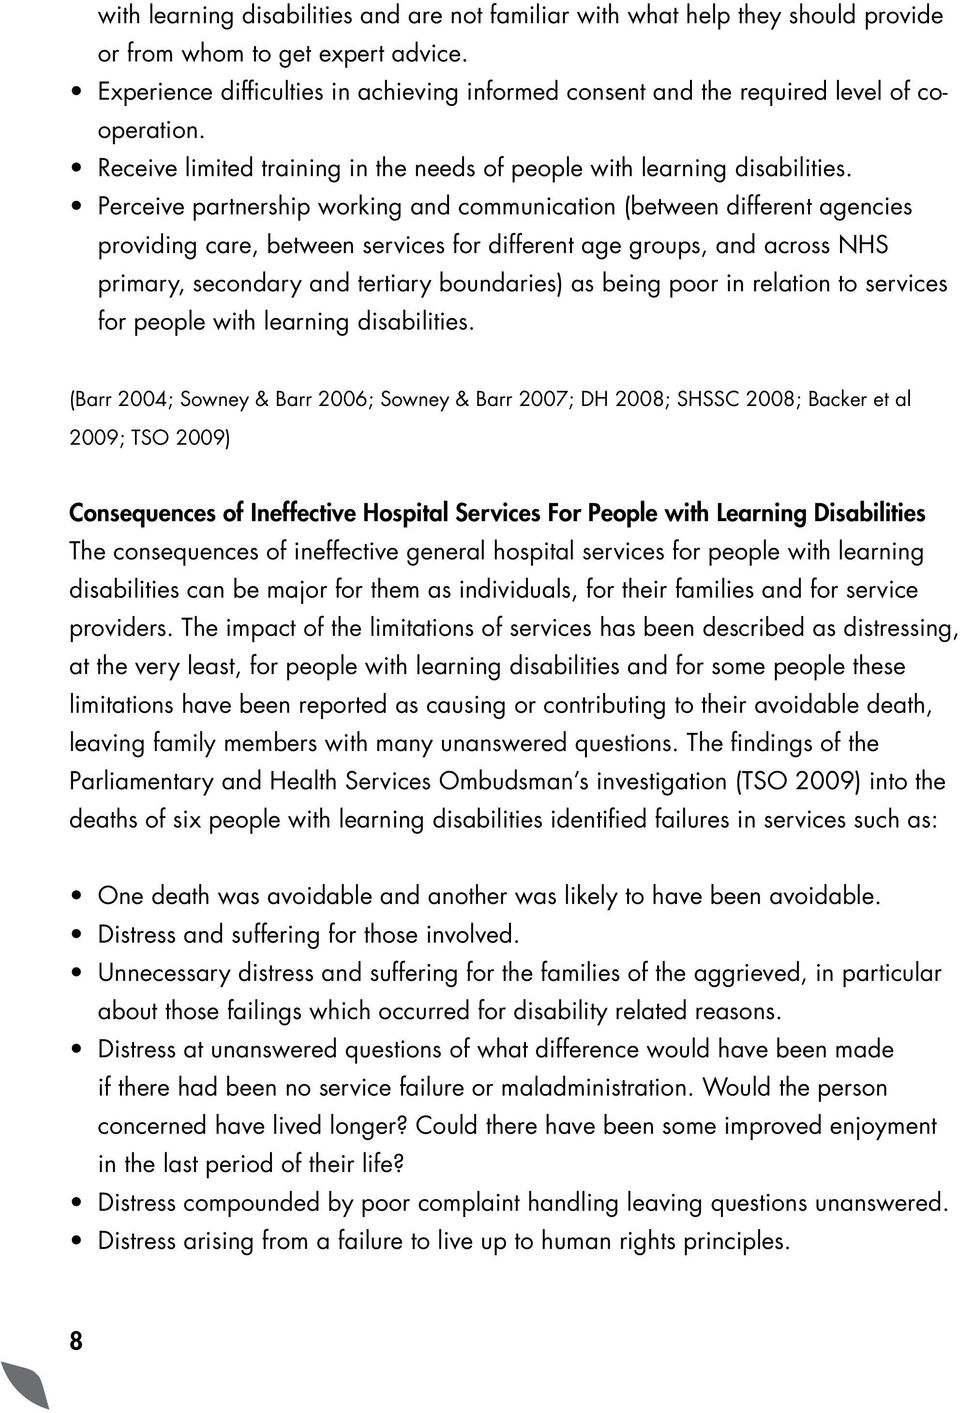 Perceive partnership working and communication (between different agencies providing care, between services for different age groups, and across NHS primary, secondary and tertiary boundaries) as